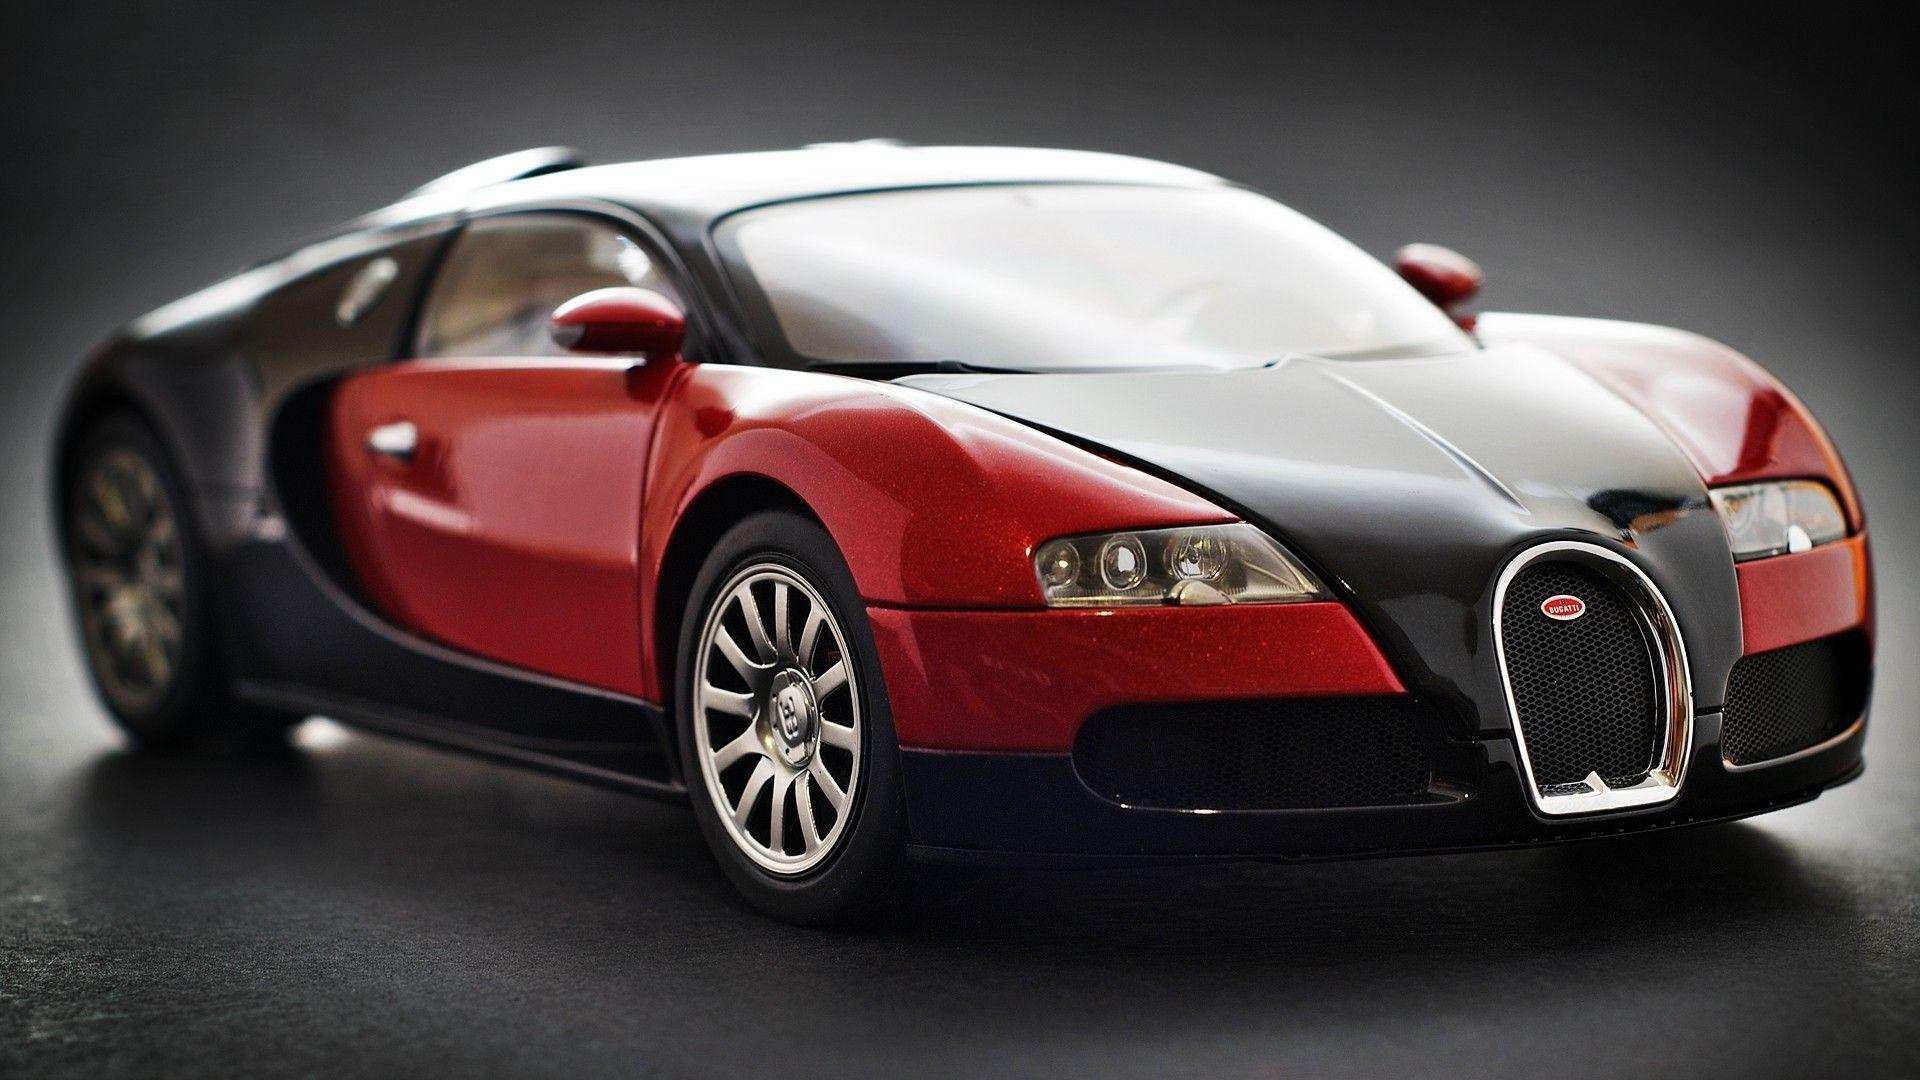 Black Bugatti Veyron Wallpapers  Wallpaper Cave